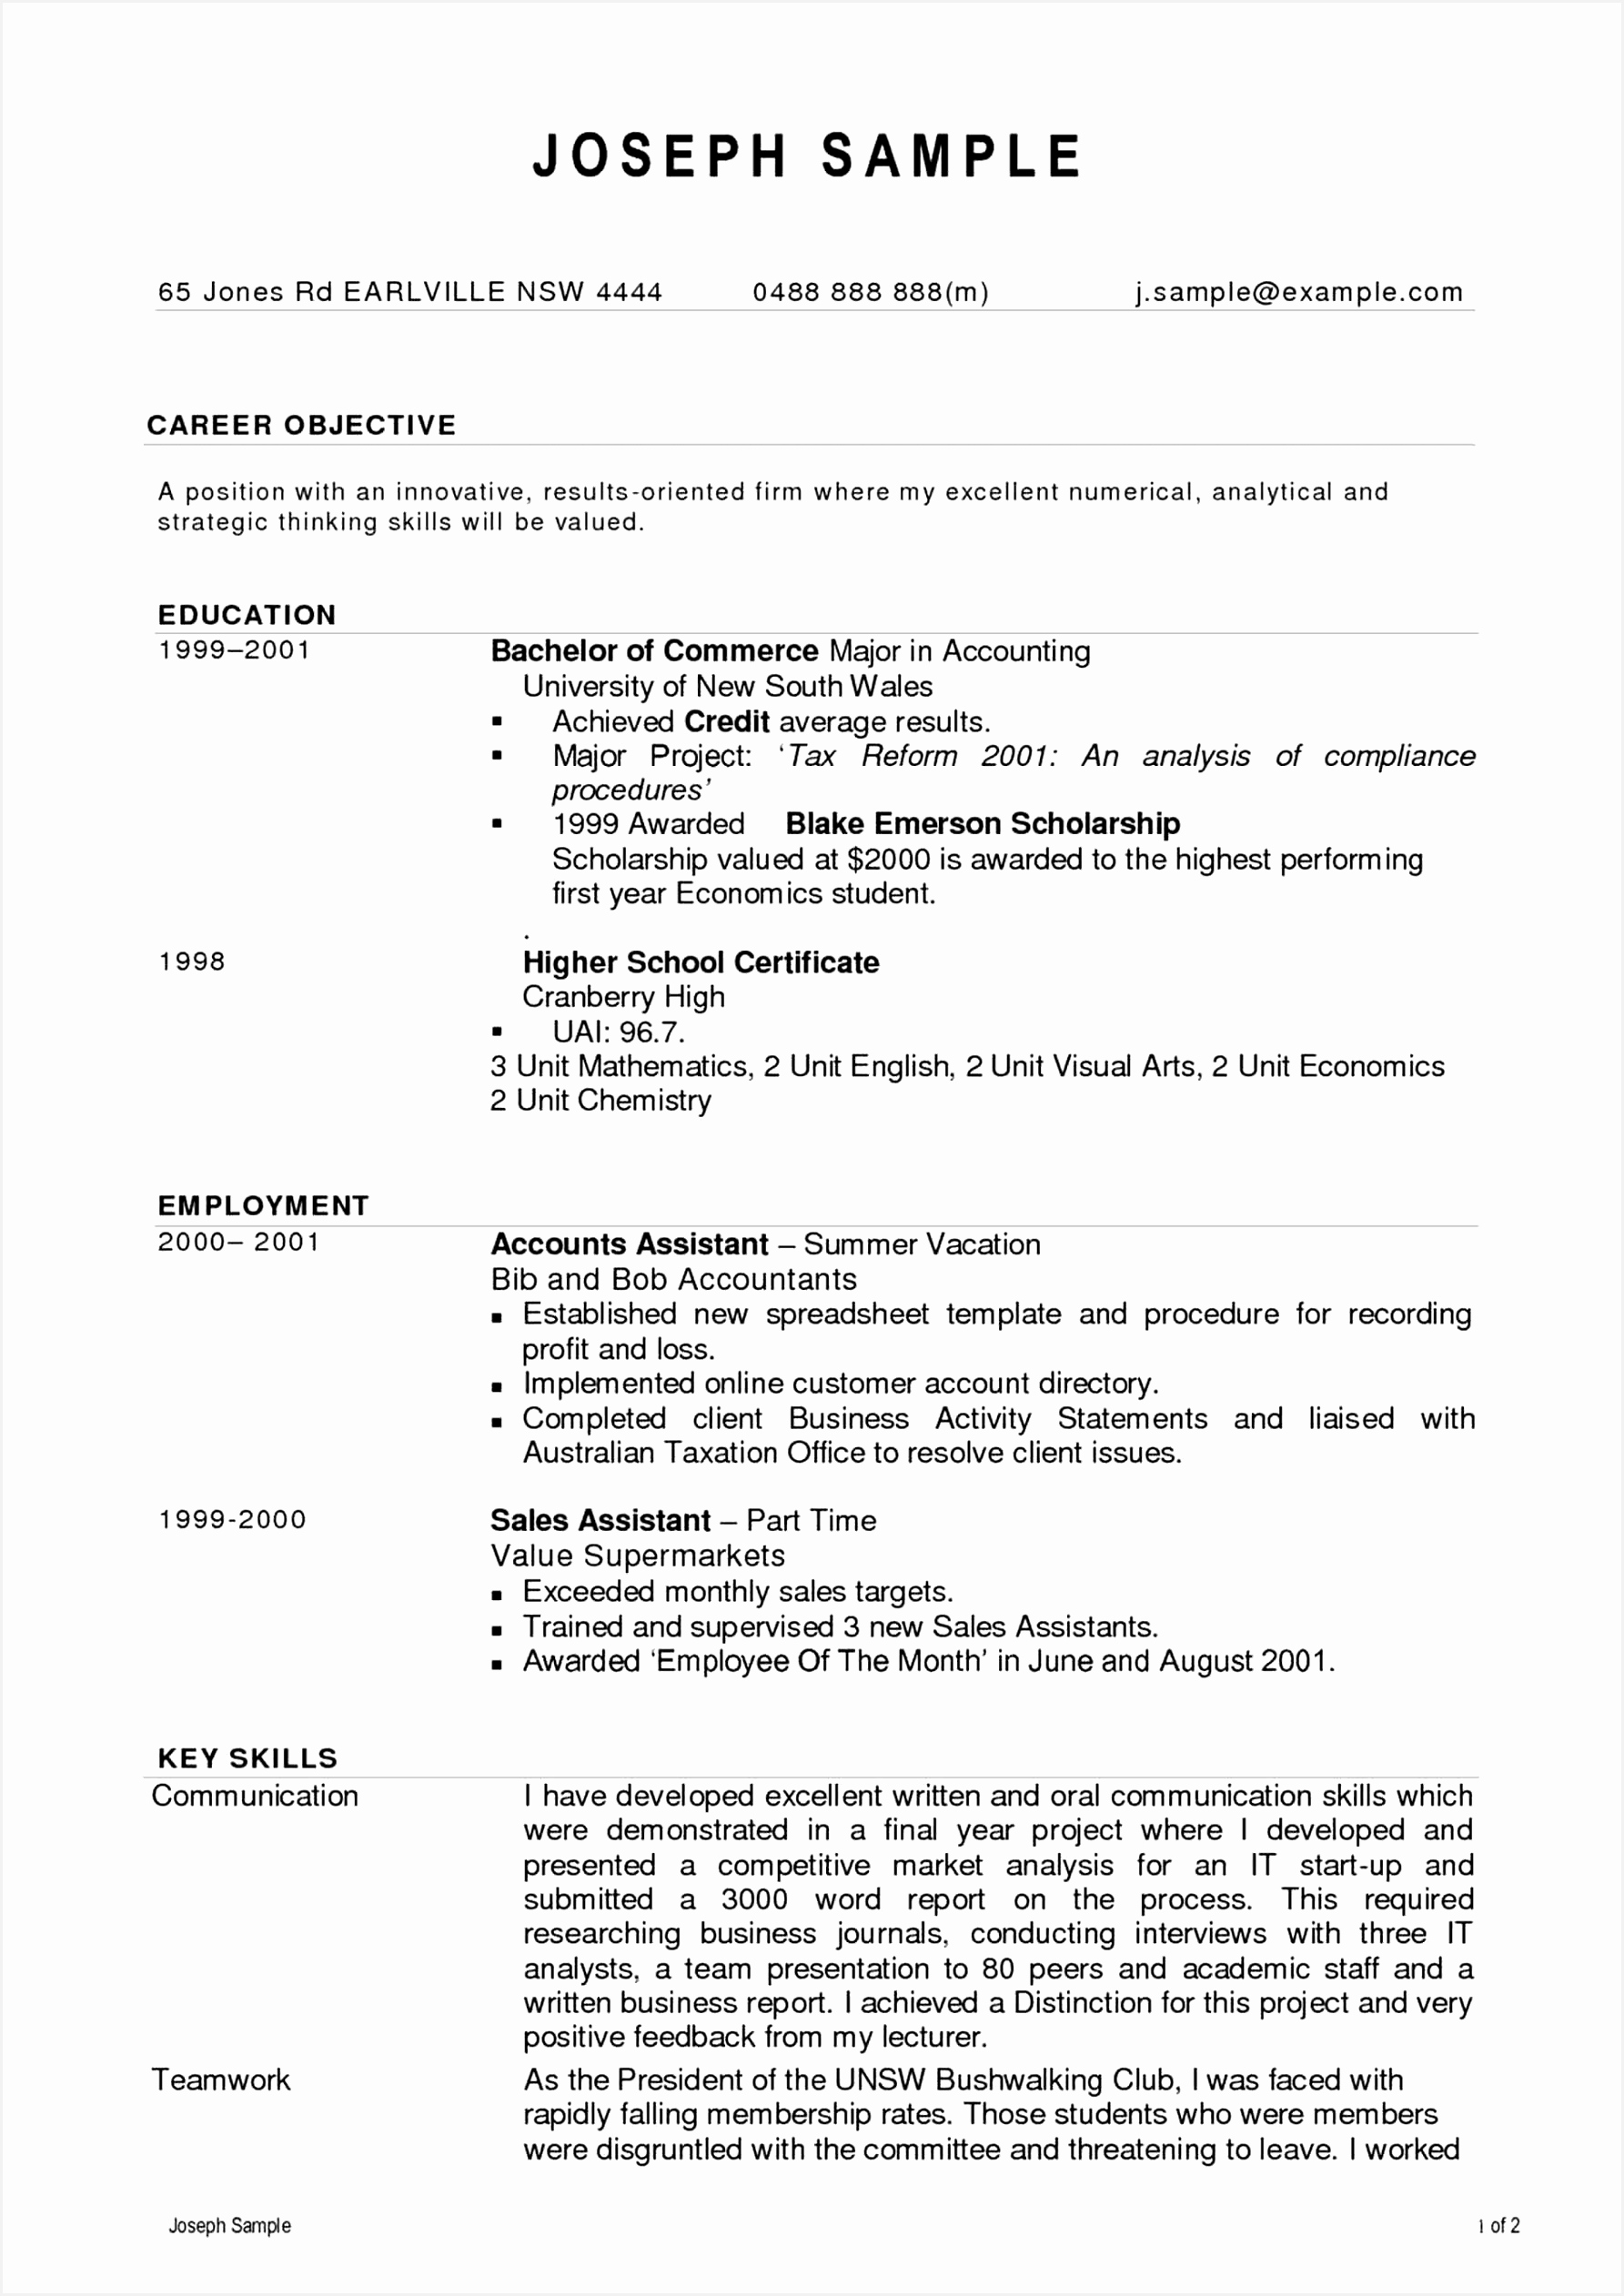 Lateral Police Officer Sample Resume Enply Beautiful 9 10 Finance Major Resume Examples Of 5 Lateral Police Officer Sample Resume